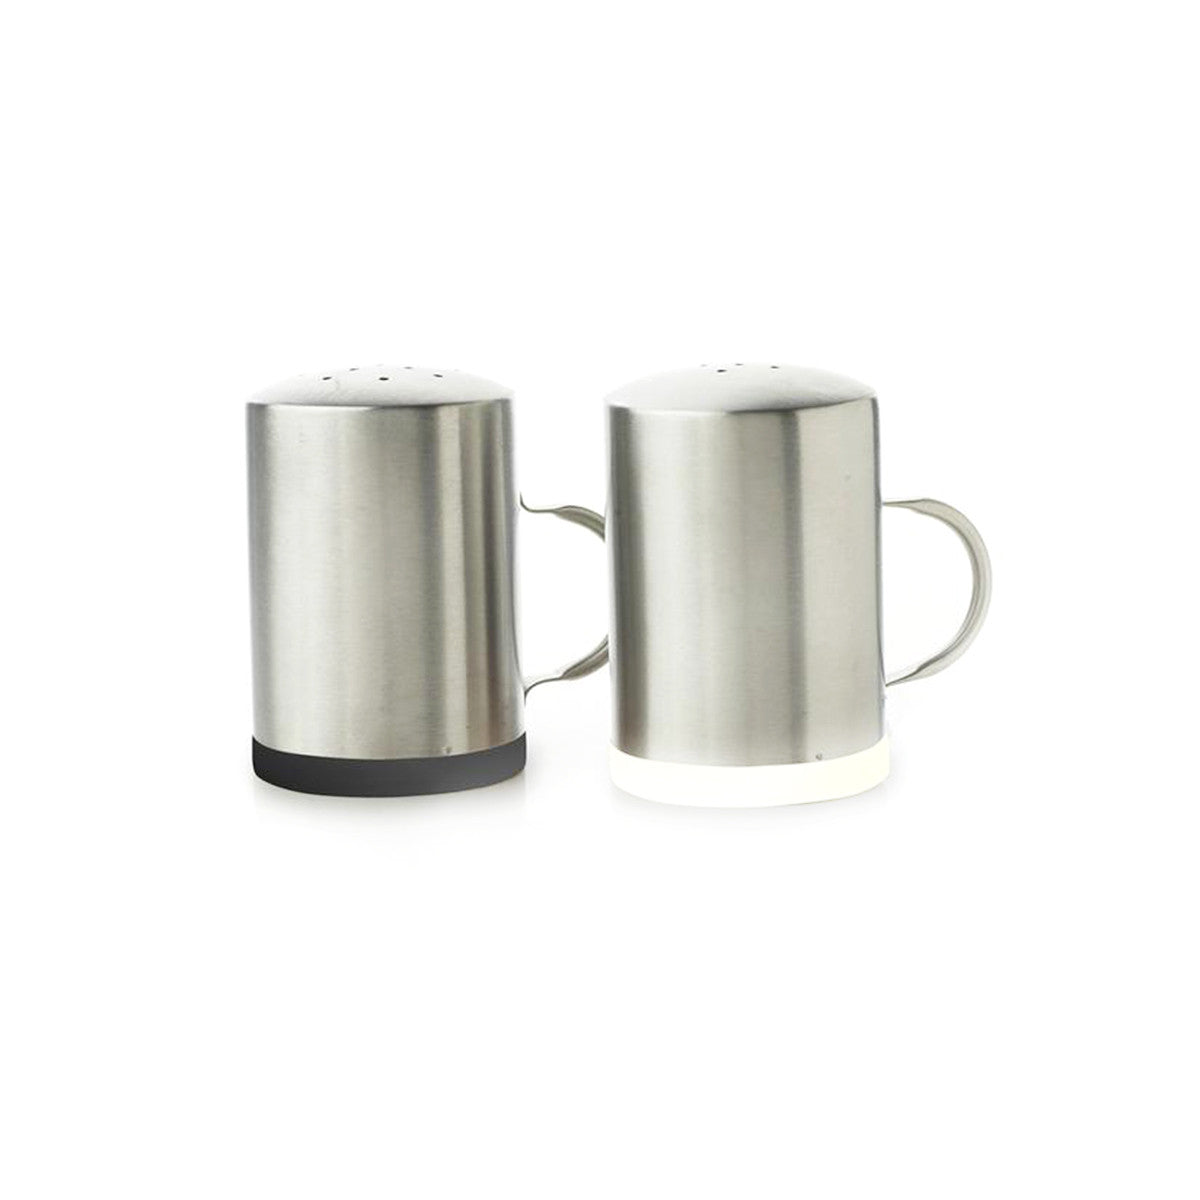 metal salt and pepper shakers  with handles – natural home brands - metal salt and pepper shakers